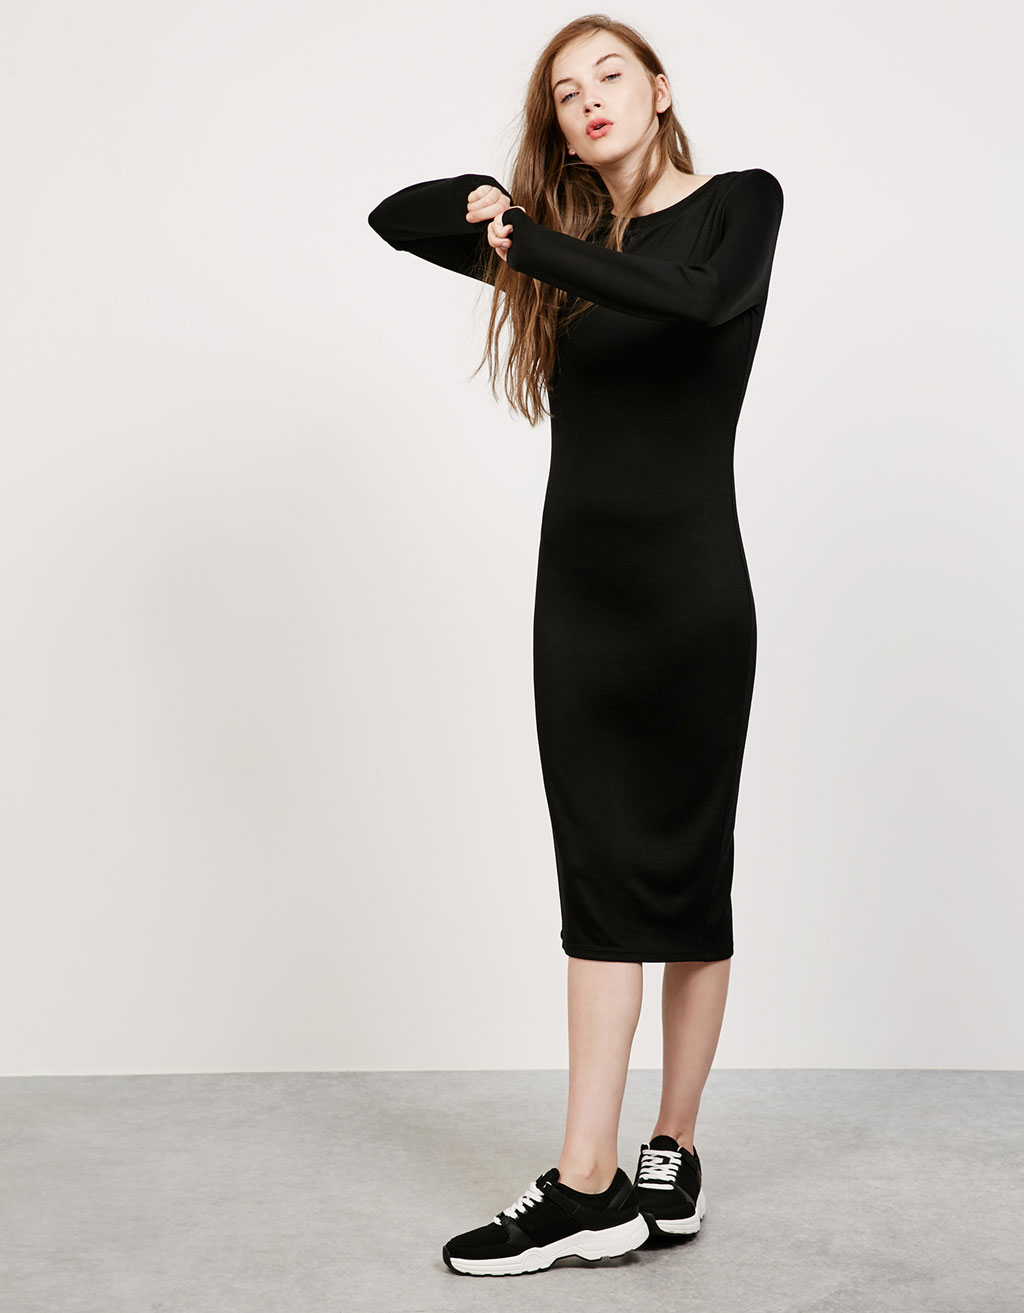 Long sleeve tight-fitting ponte di roma dress